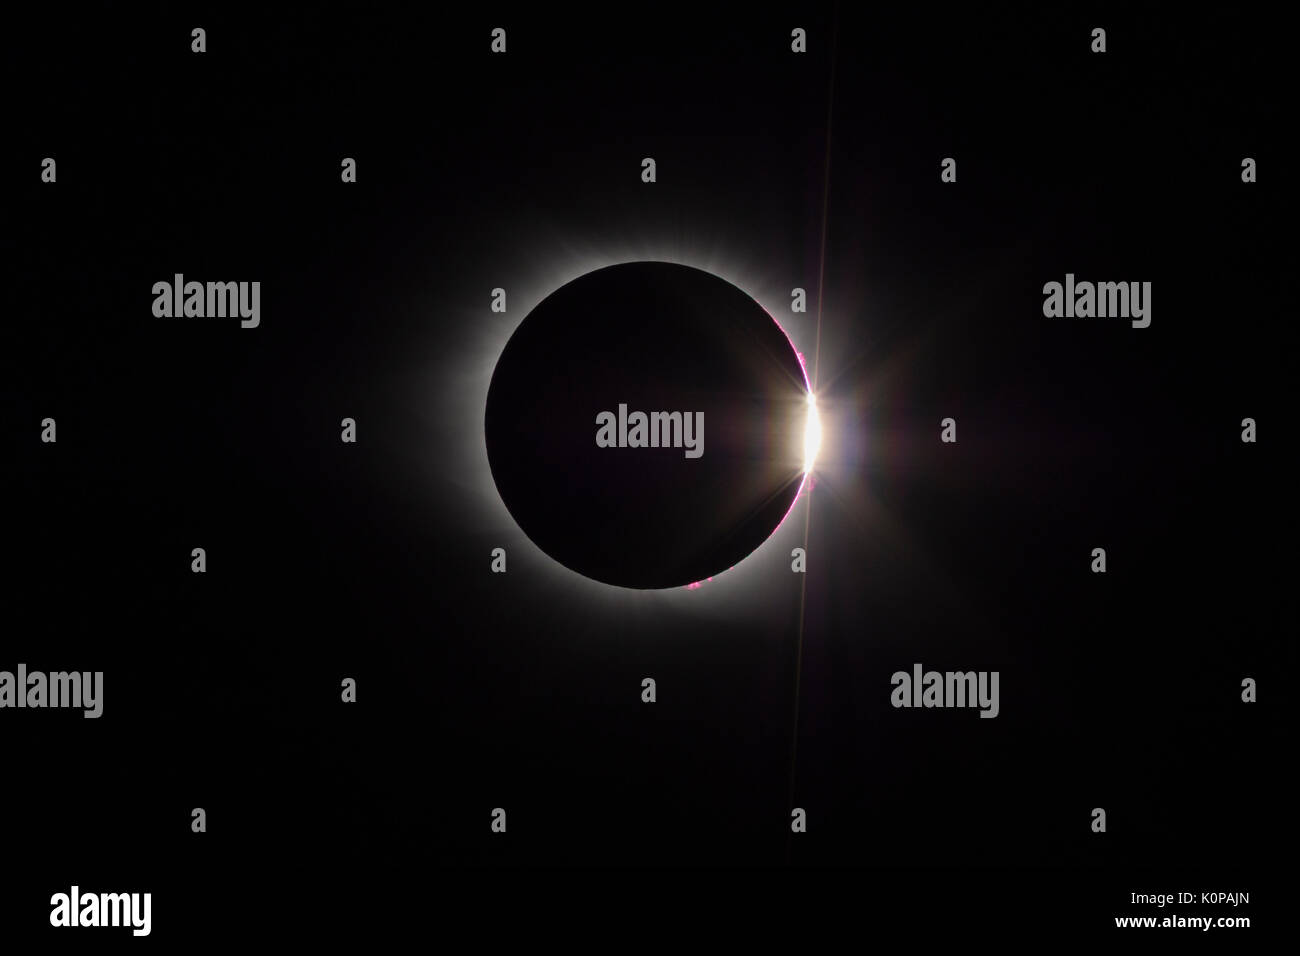 The Sun's corona and the diamond ring effect are visible at the end of the total eclipse phase of the Great American Eclipse on August 21, 2017. - Stock Image